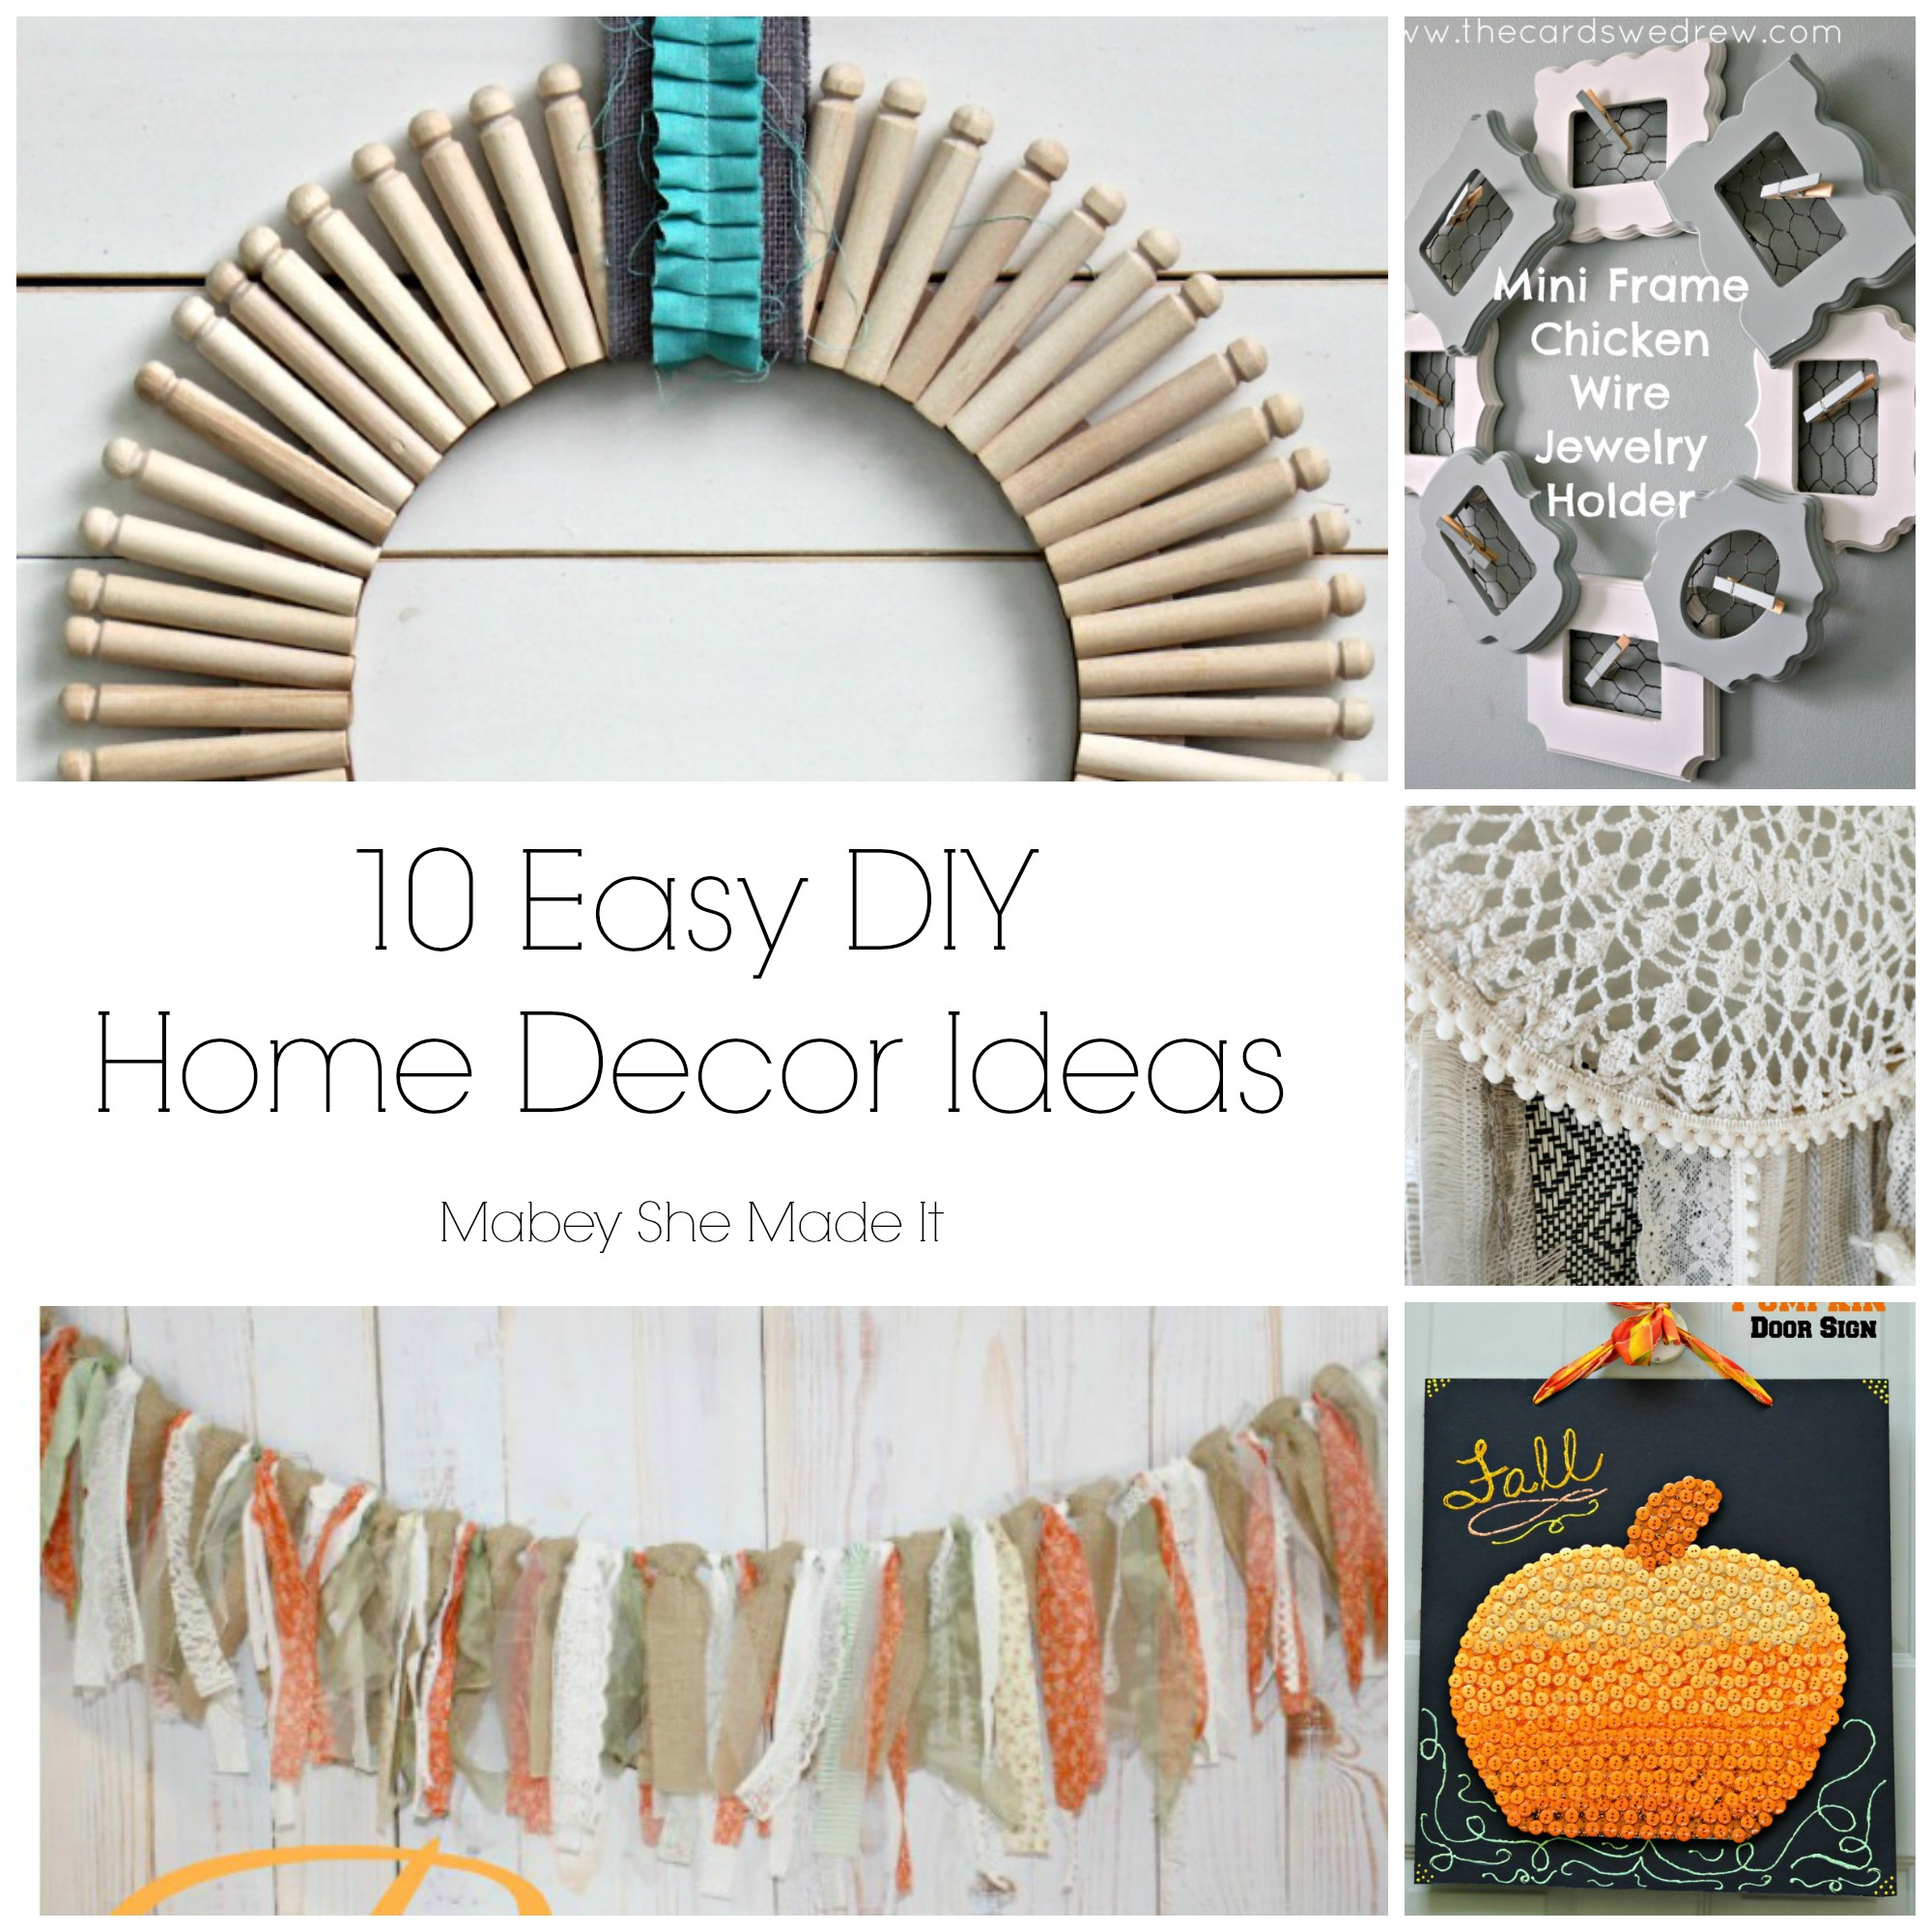 Superior Easy Cheap Diy Home Decorating Ideas Part - 9: 10 Easy DIY Home Decor Ideas | Mabey She Made It | #homedecor #DIY